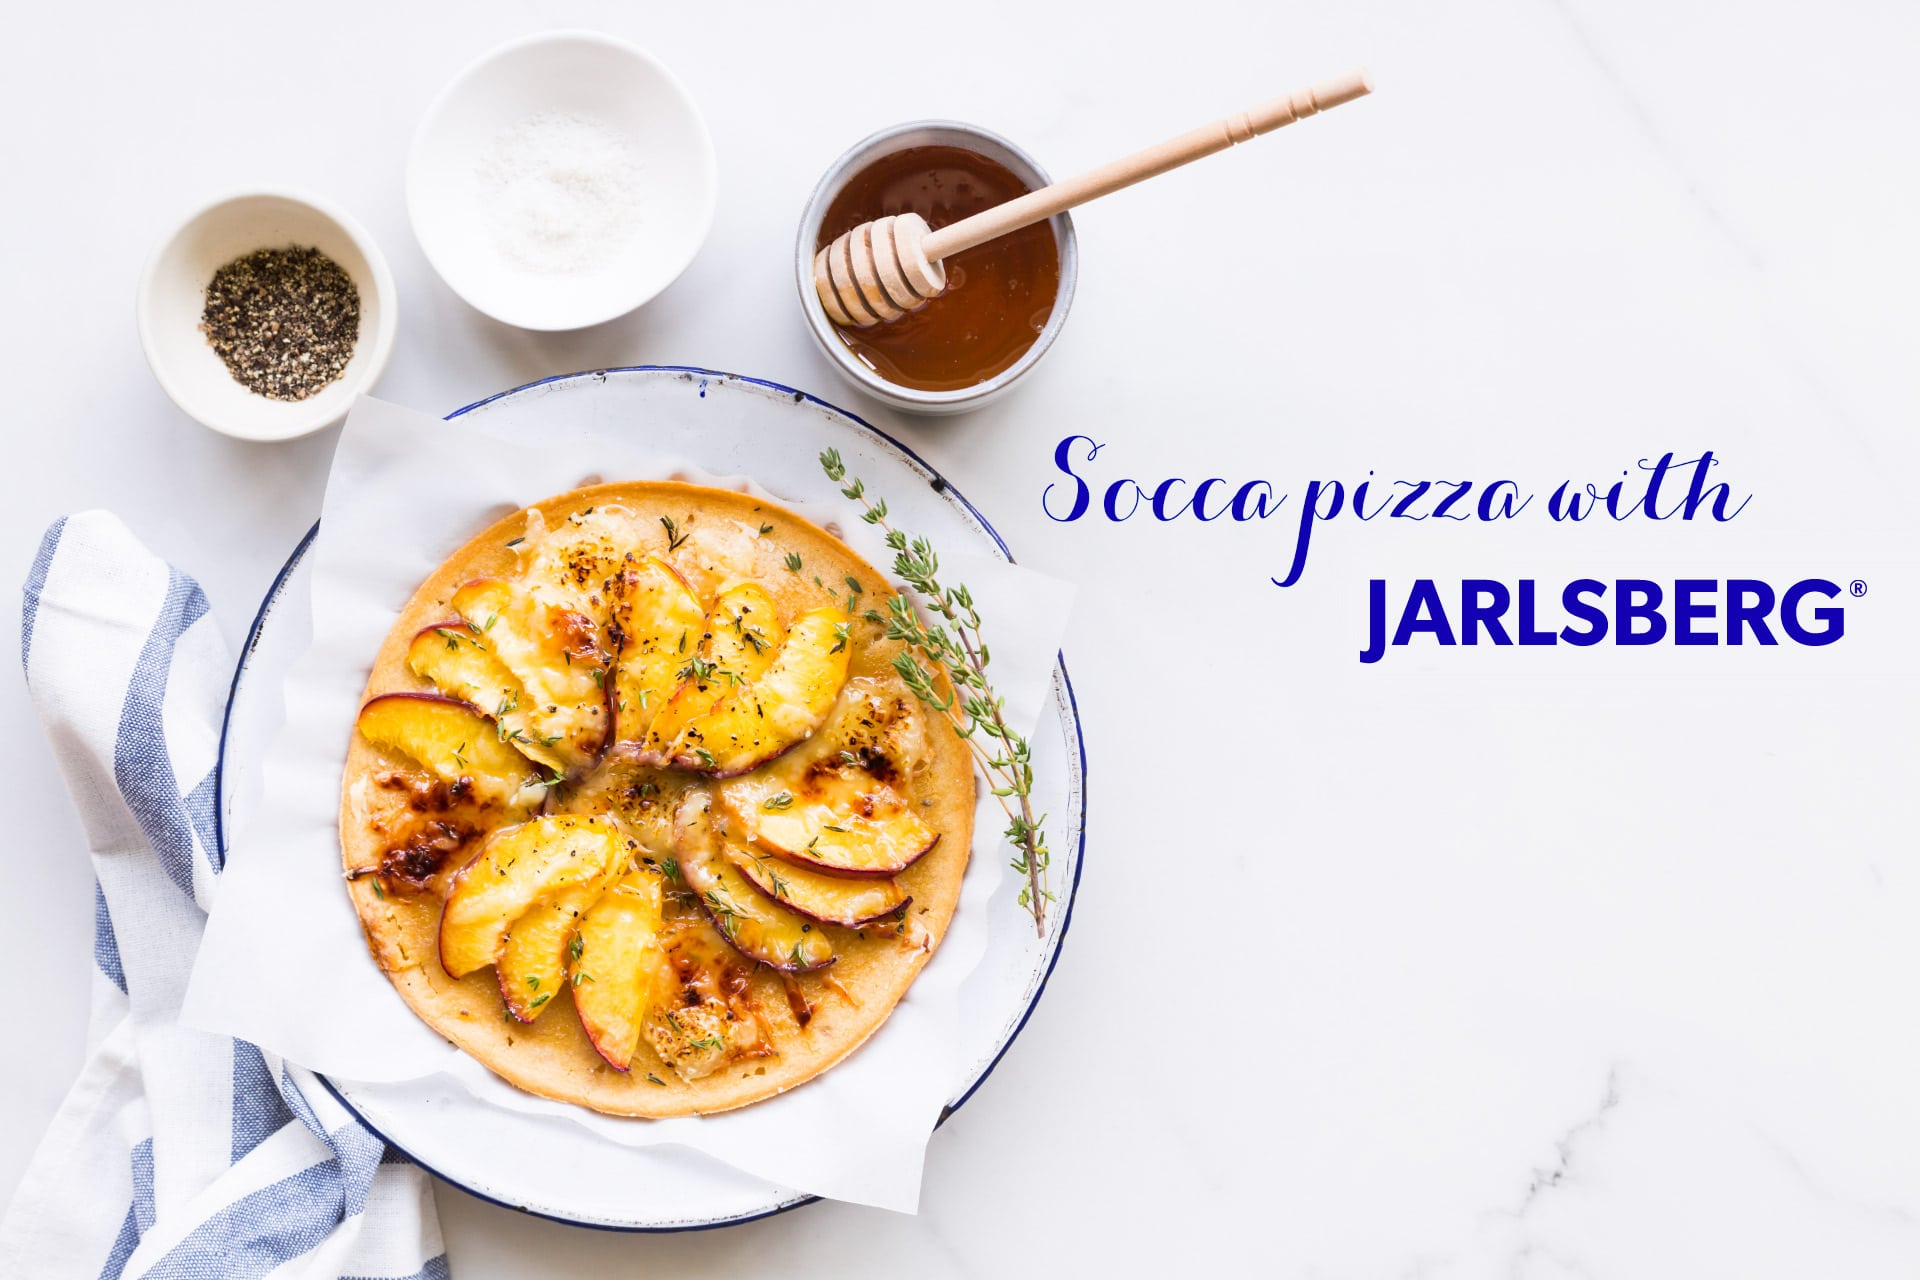 Gluten-free socca pizza with nectarines and Jarlsberg cheese